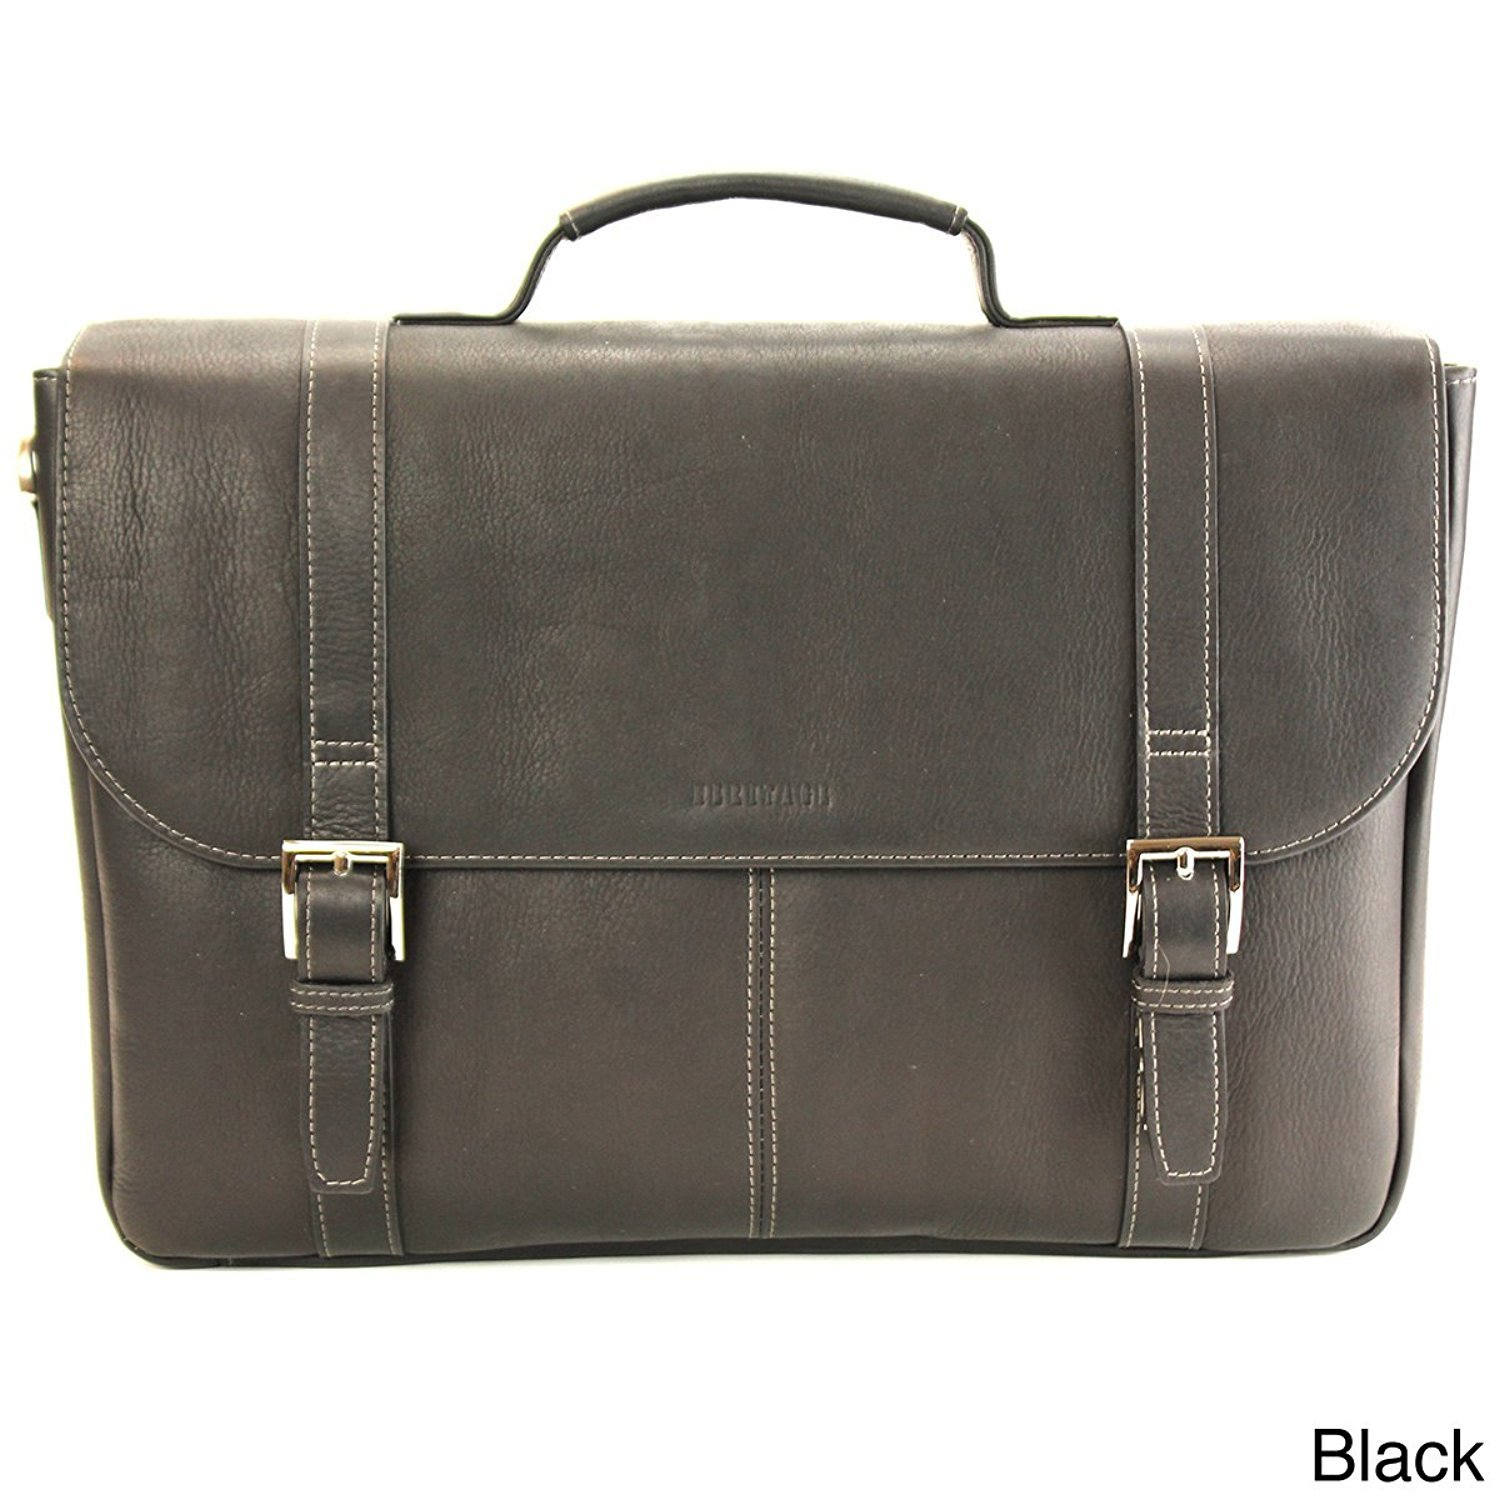 Black Leather Attorney Briefcase, Lawyers Messenger Bag Business Laptops